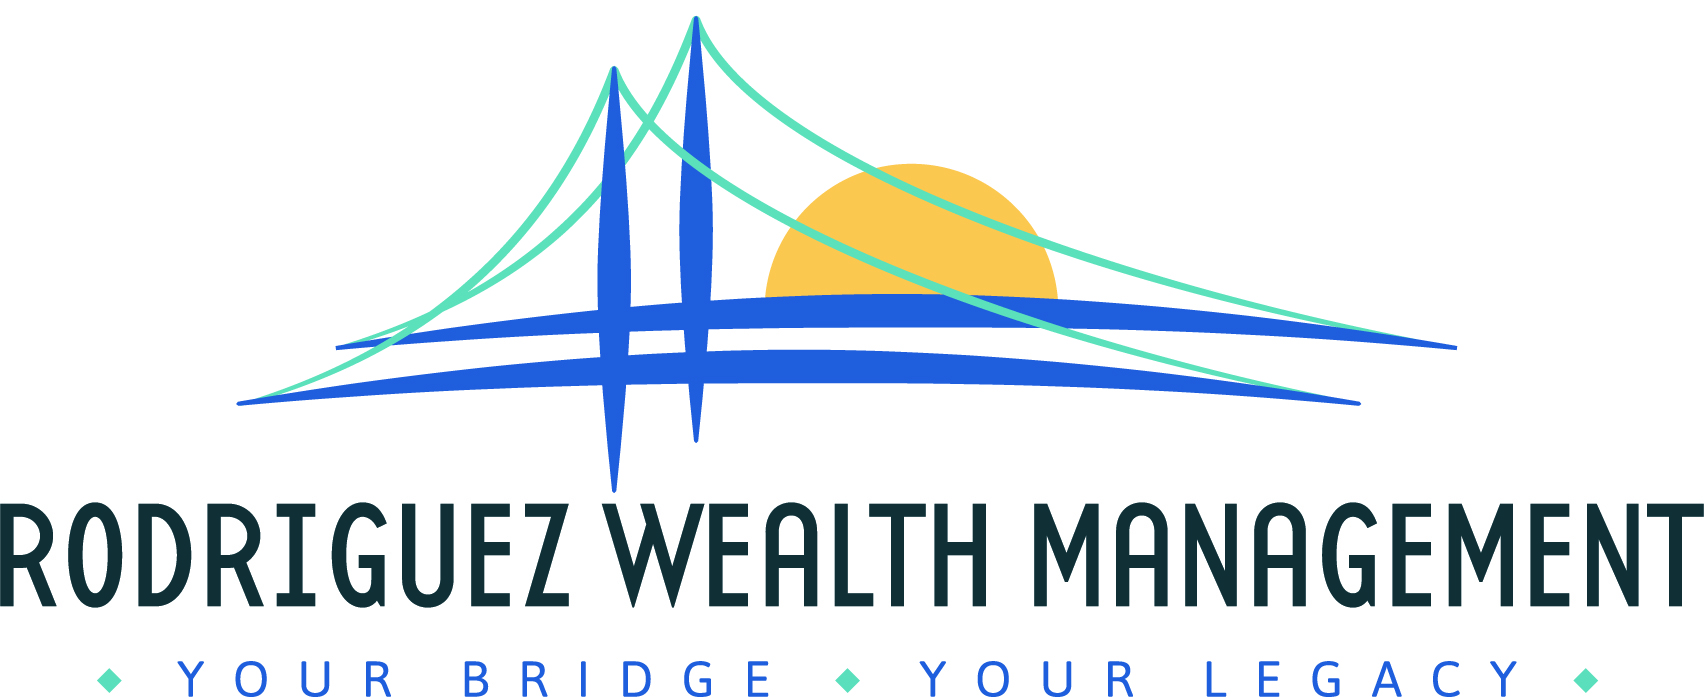 Rodriguez Wealth Management - Middletown, RI